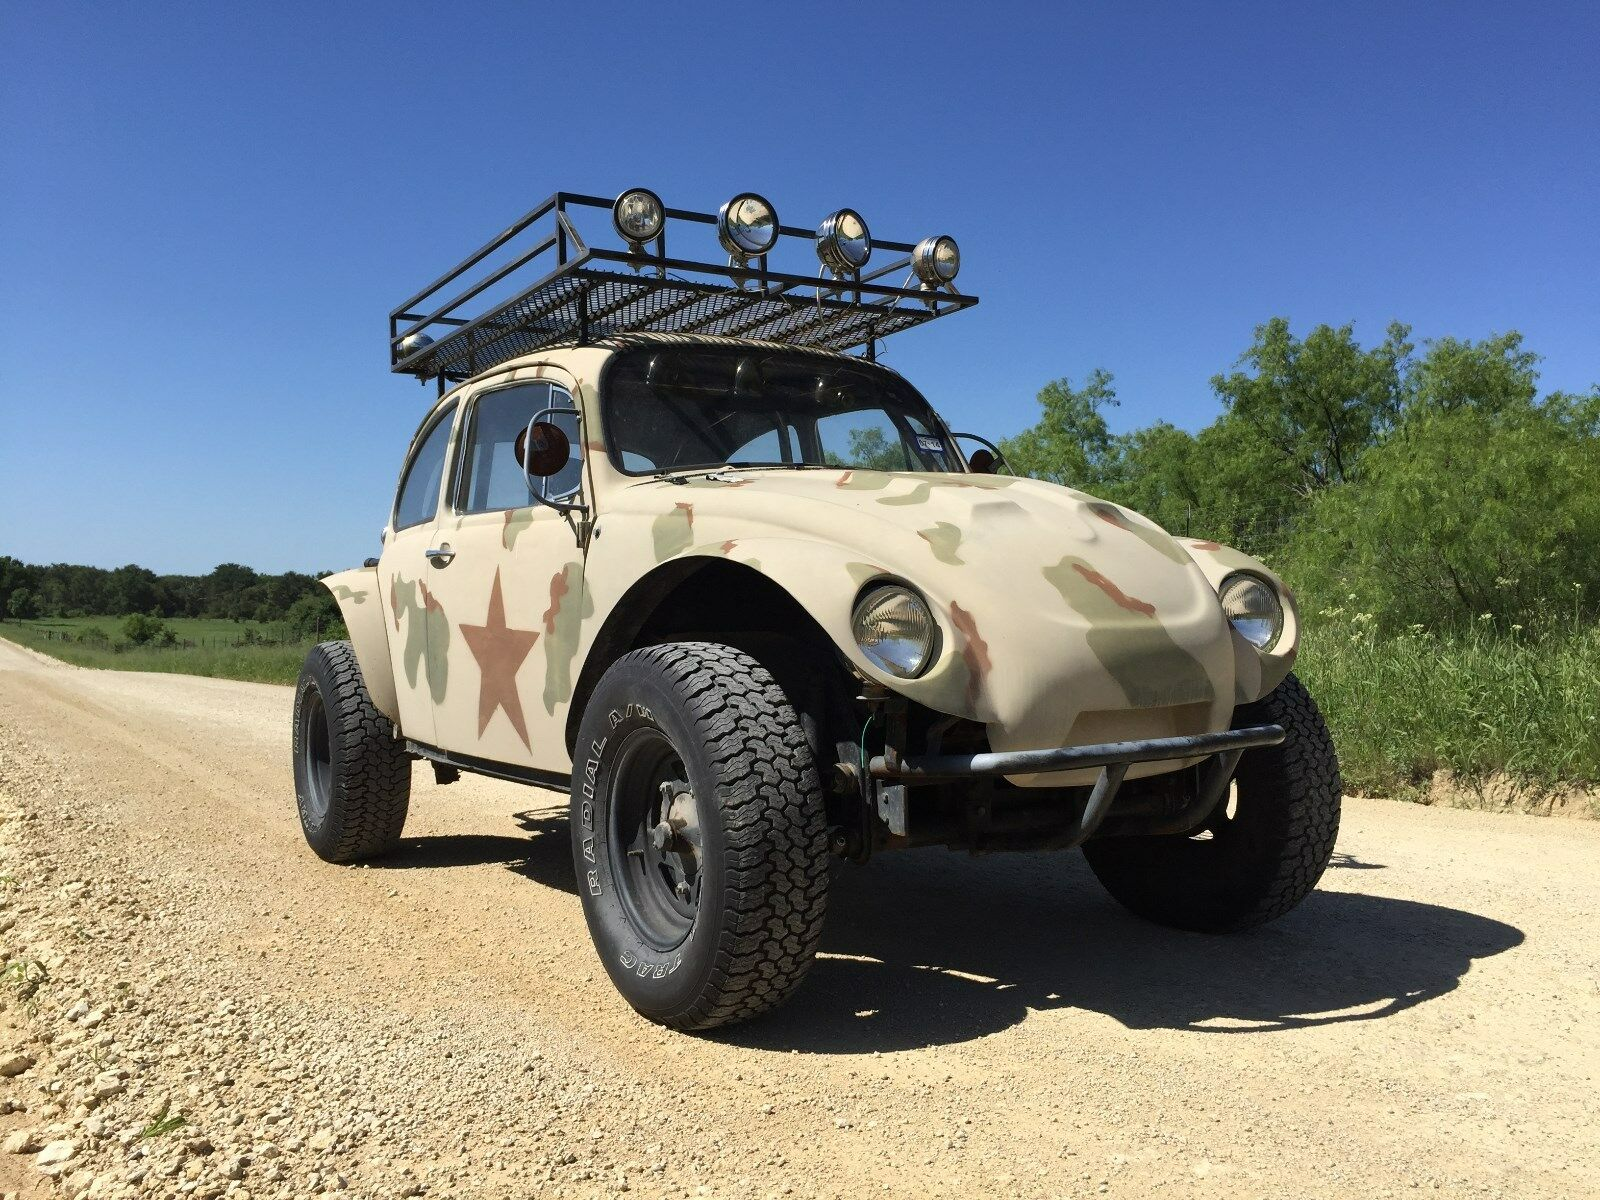 1969 Volkswagen Beetle - Classic BAJA BUG - NO RESERVE! 1969 '69 VW Baja Bug, TwinCarb DualPort Engine, bins of spare parts! NO RESERVE!